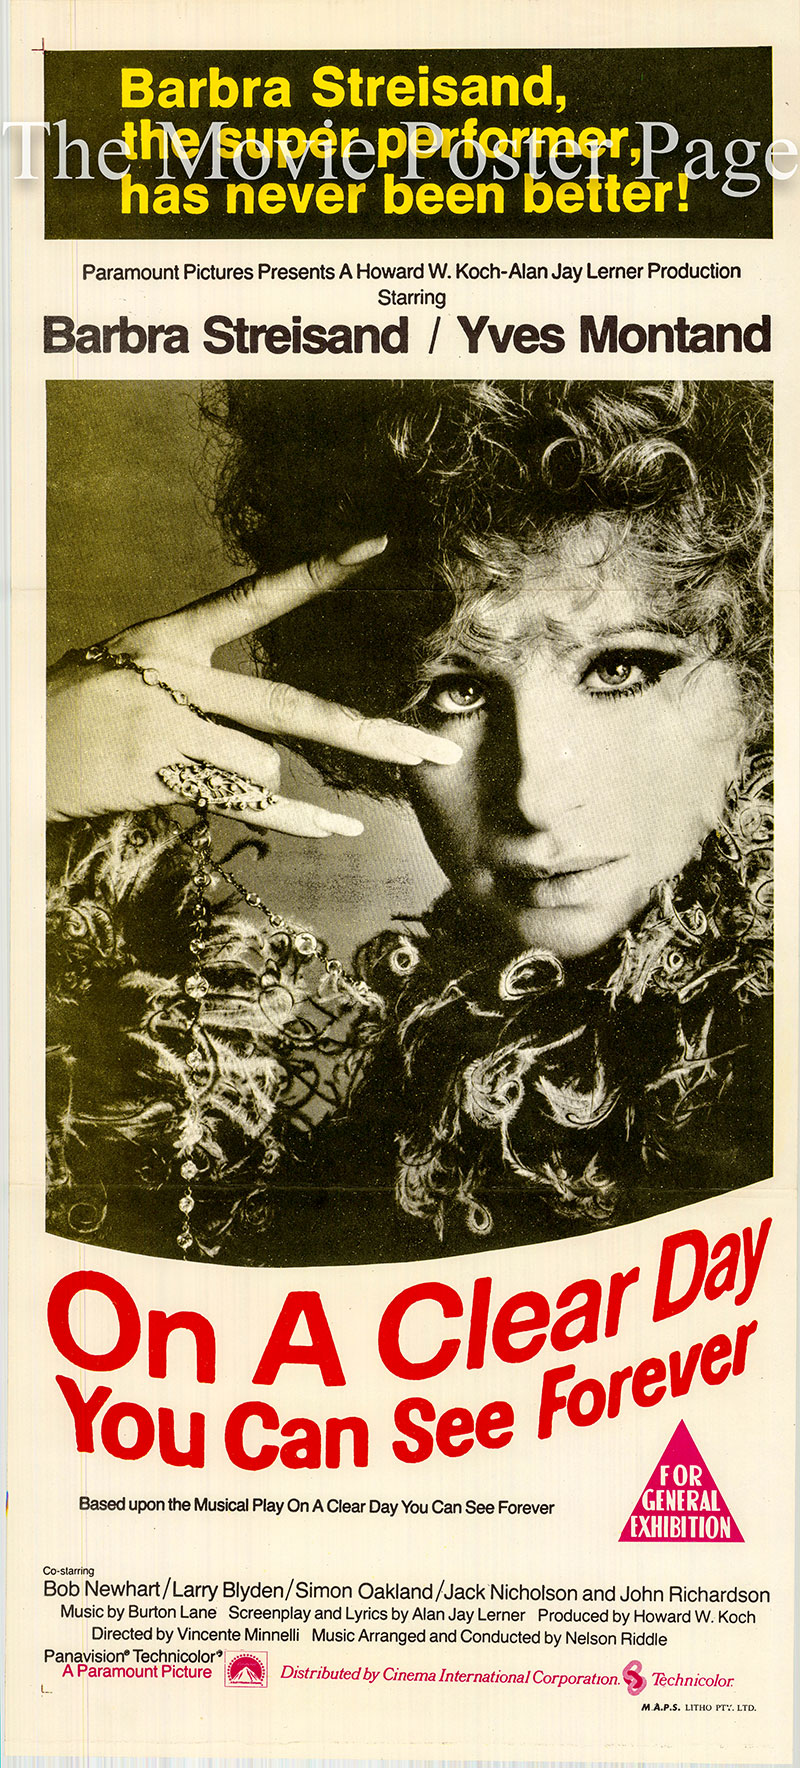 Pictured is an Australian day bill promotional poster for the 1970 Vincente Minnelli film On a Clear Day You Can See Forever, starring Barbra Streisand.